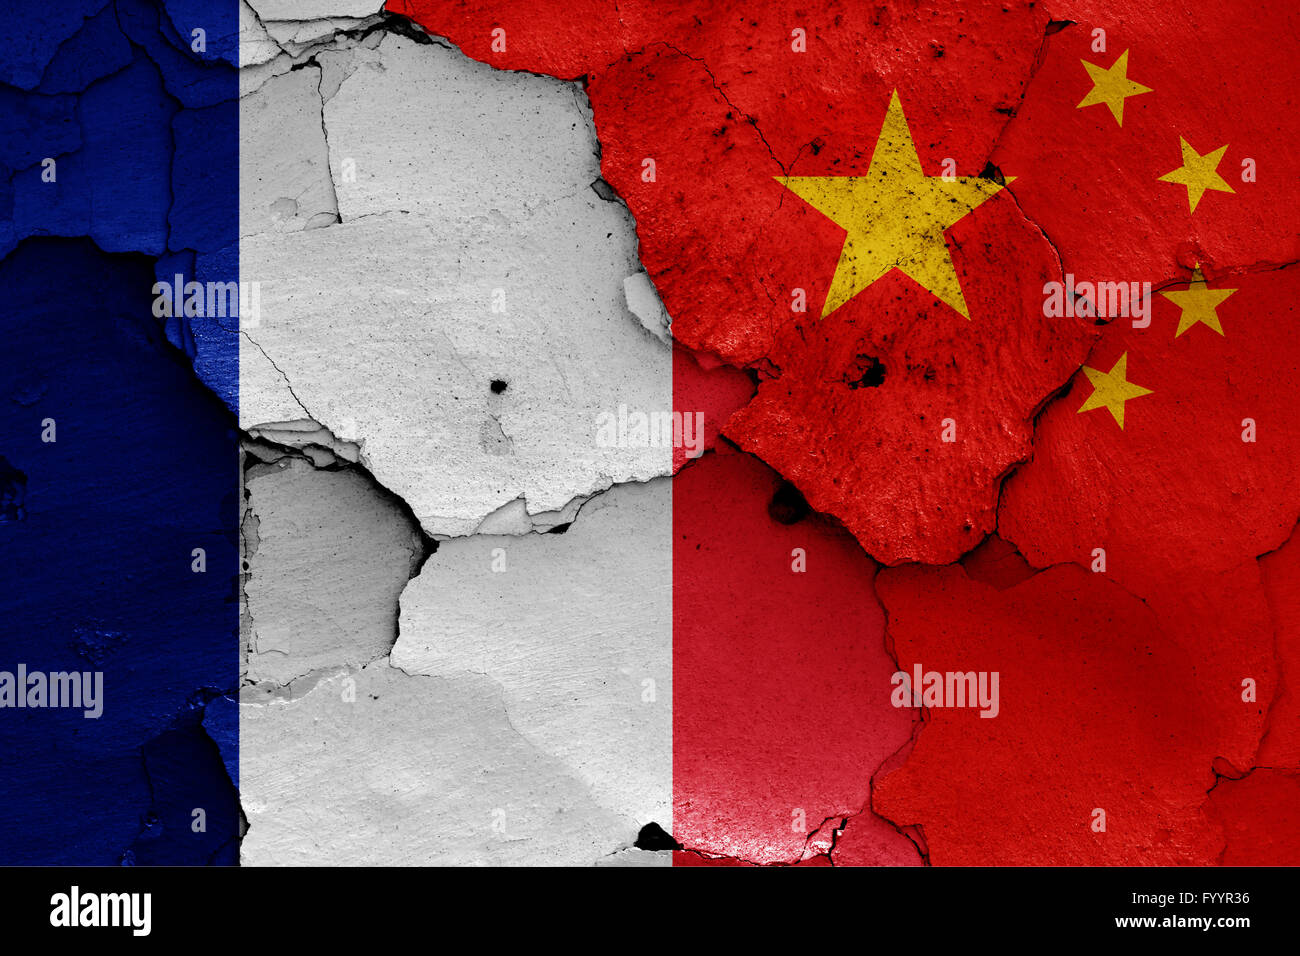 flags of France and China painted on cracked wall - Stock Image